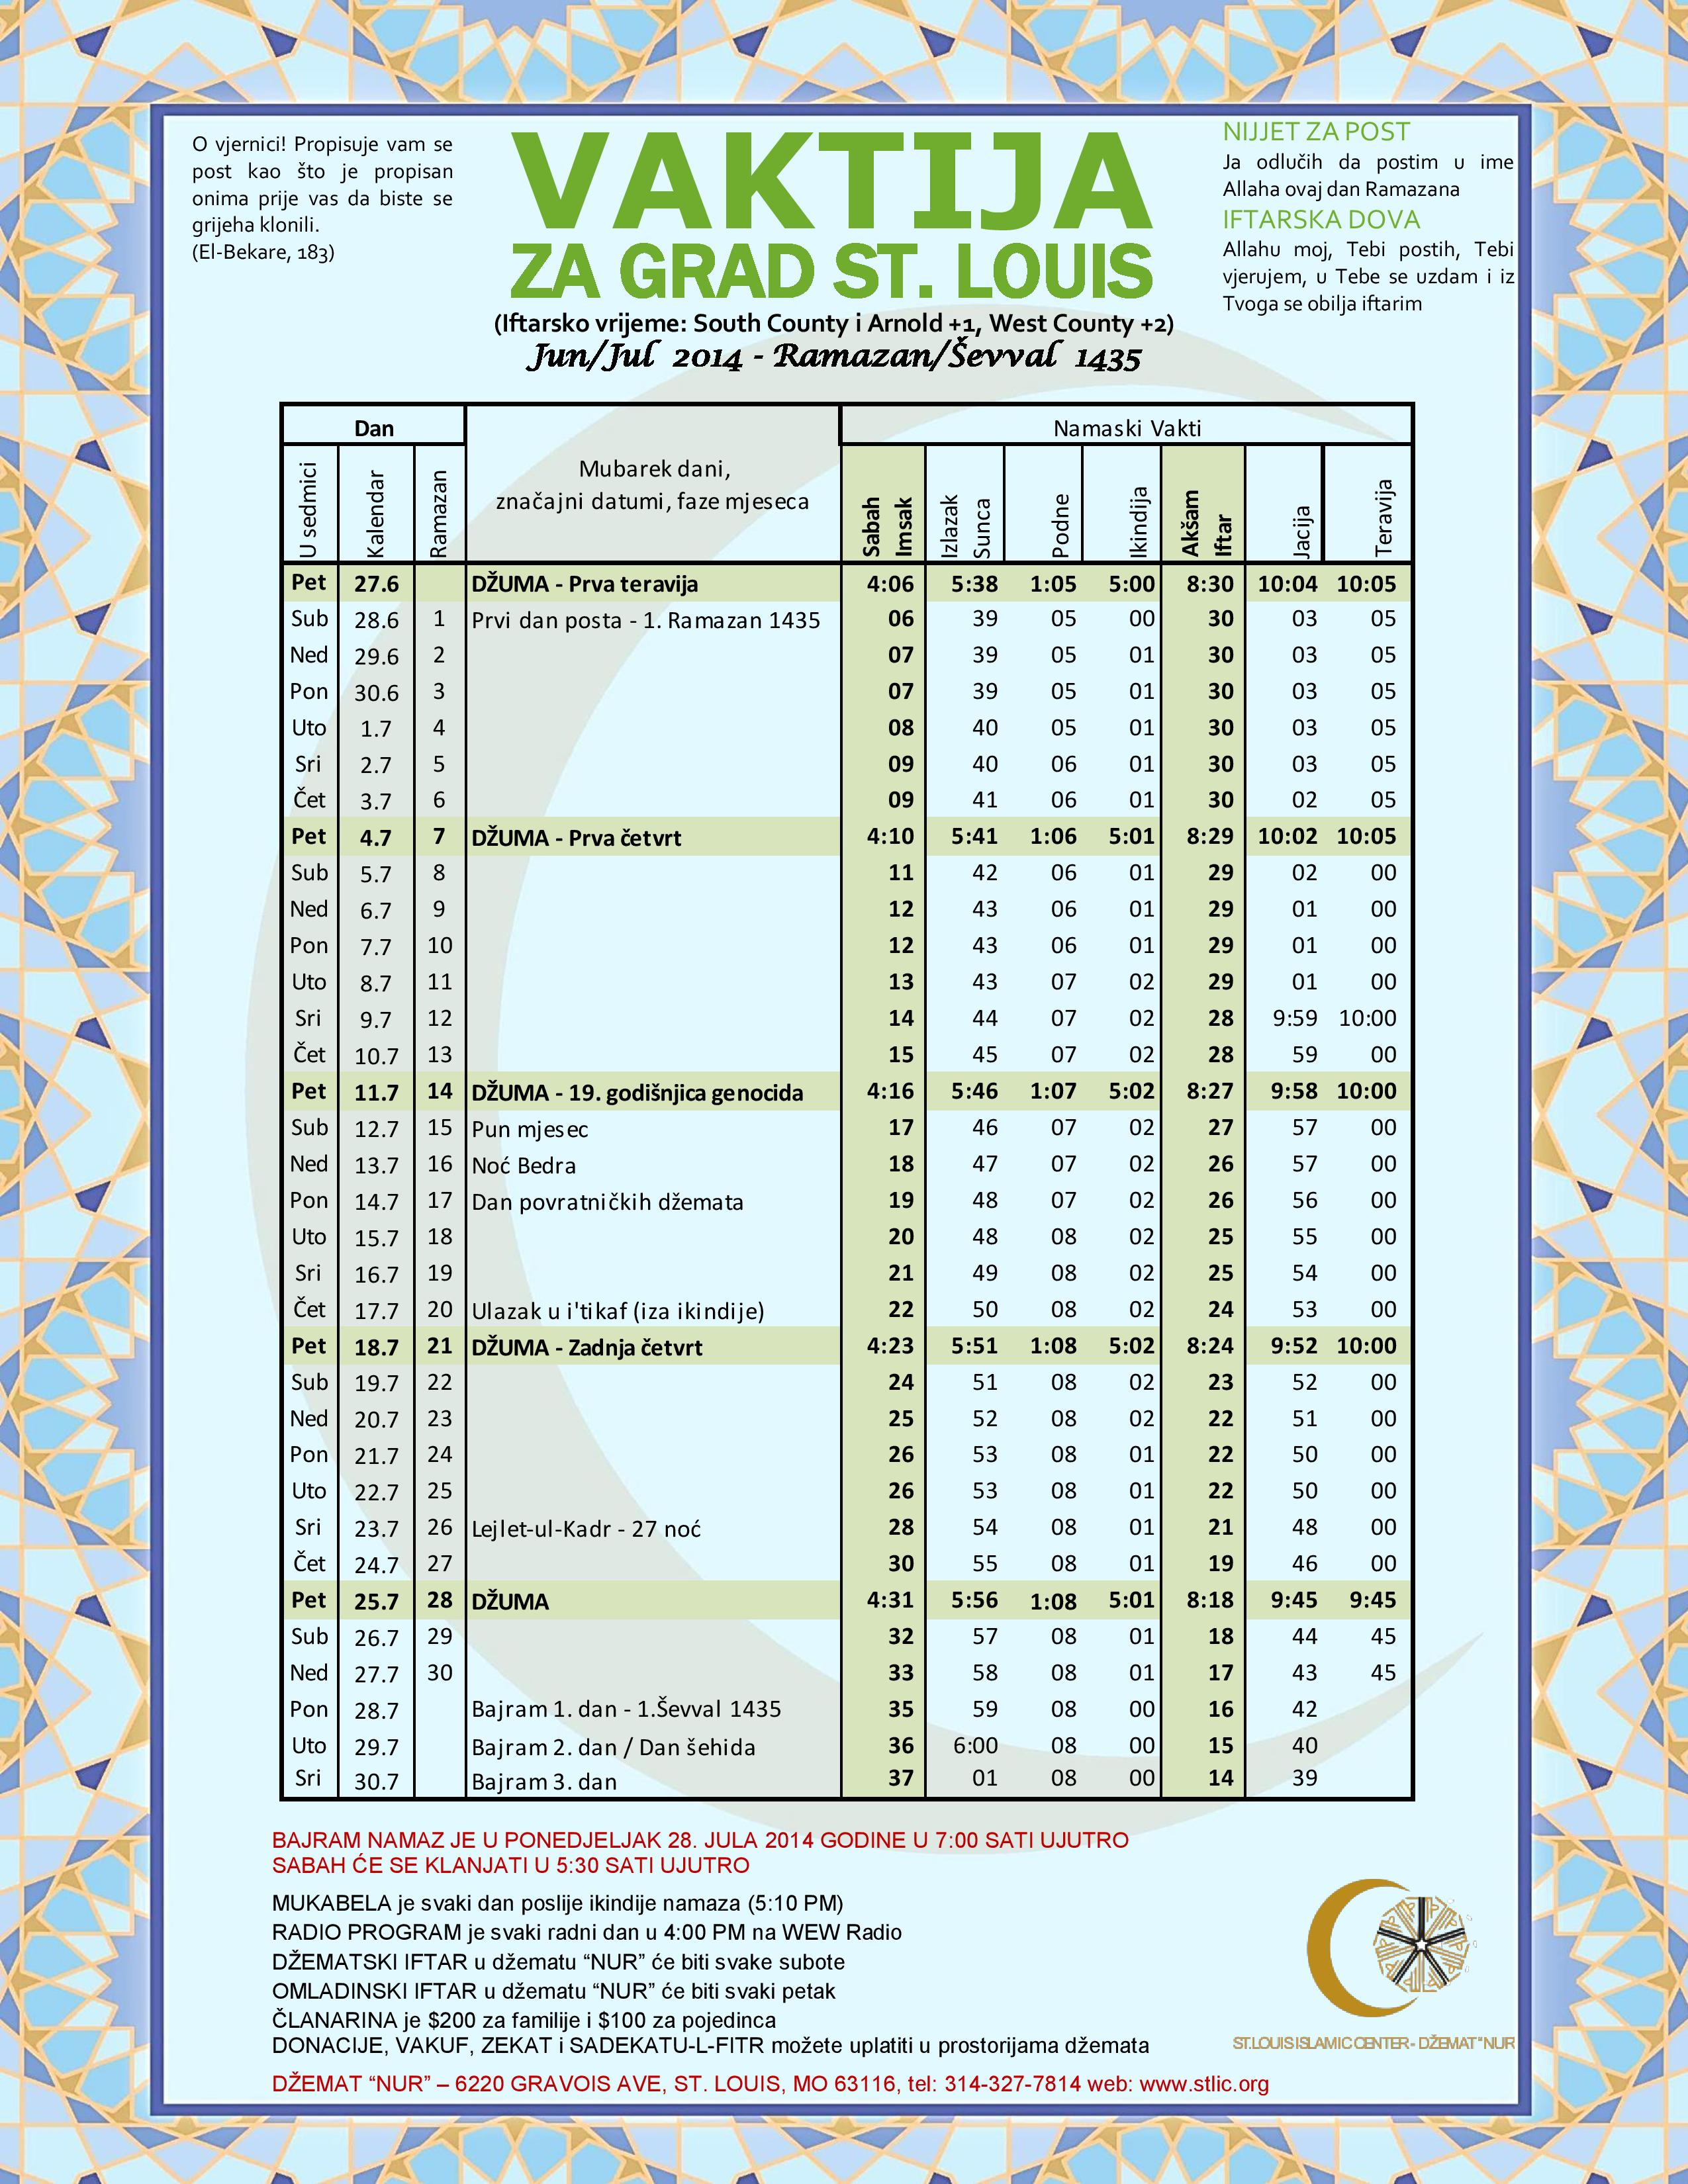 muslim singles in saint louis St louis mo demographics data with population from census shown with charts, graphs and text includes hispanic, race, citizenship, births and singles st louis county and st charles county.